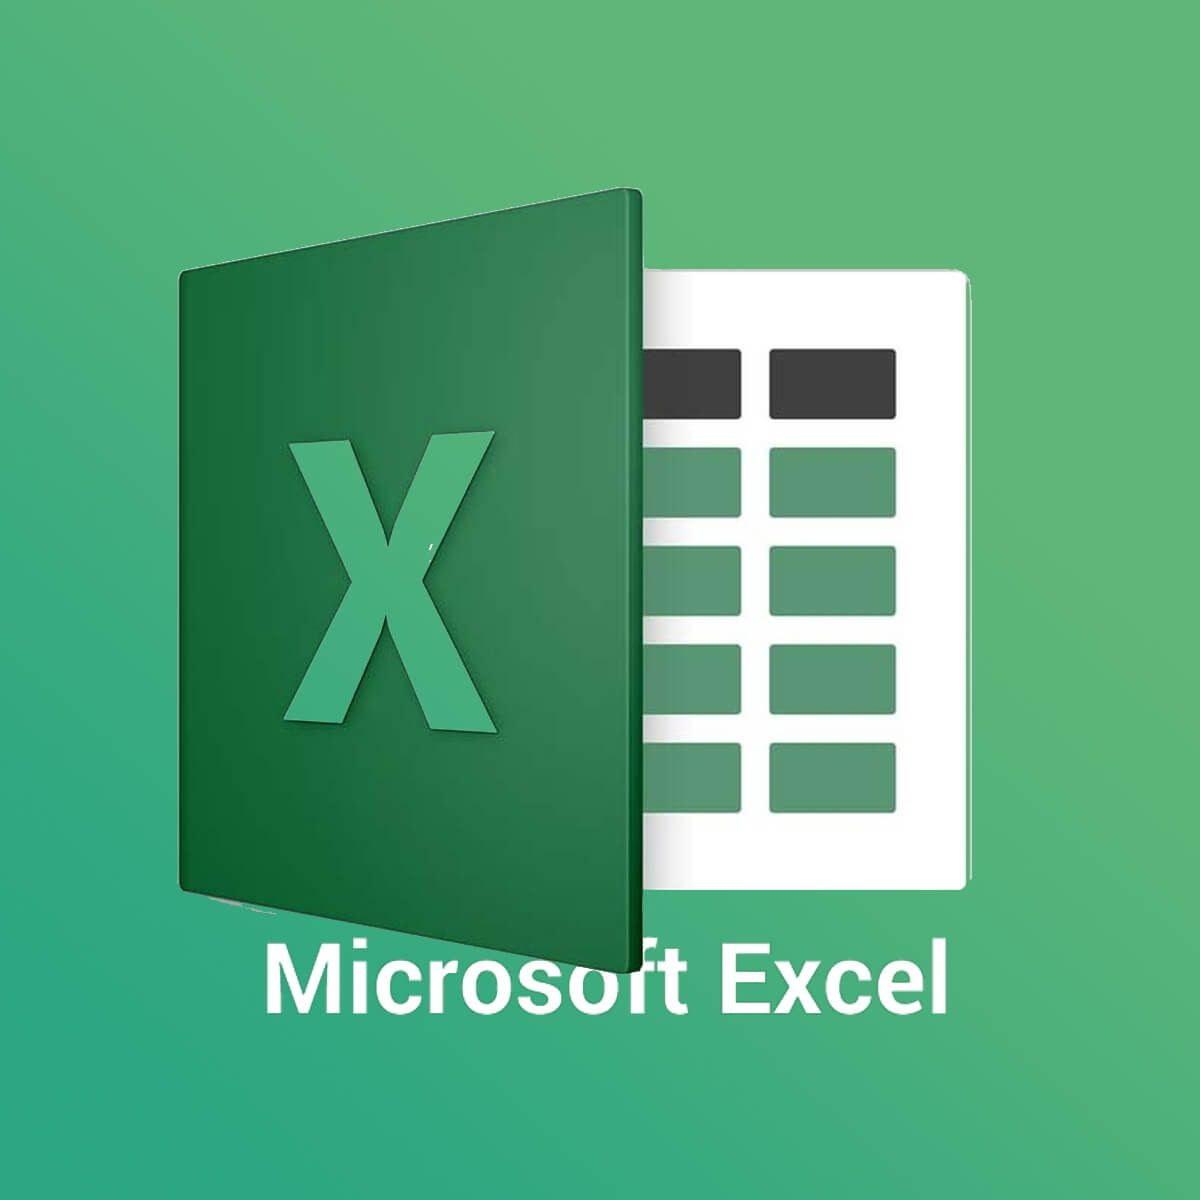 Microsoft Excel Is A Popular Spreadsheet Application With